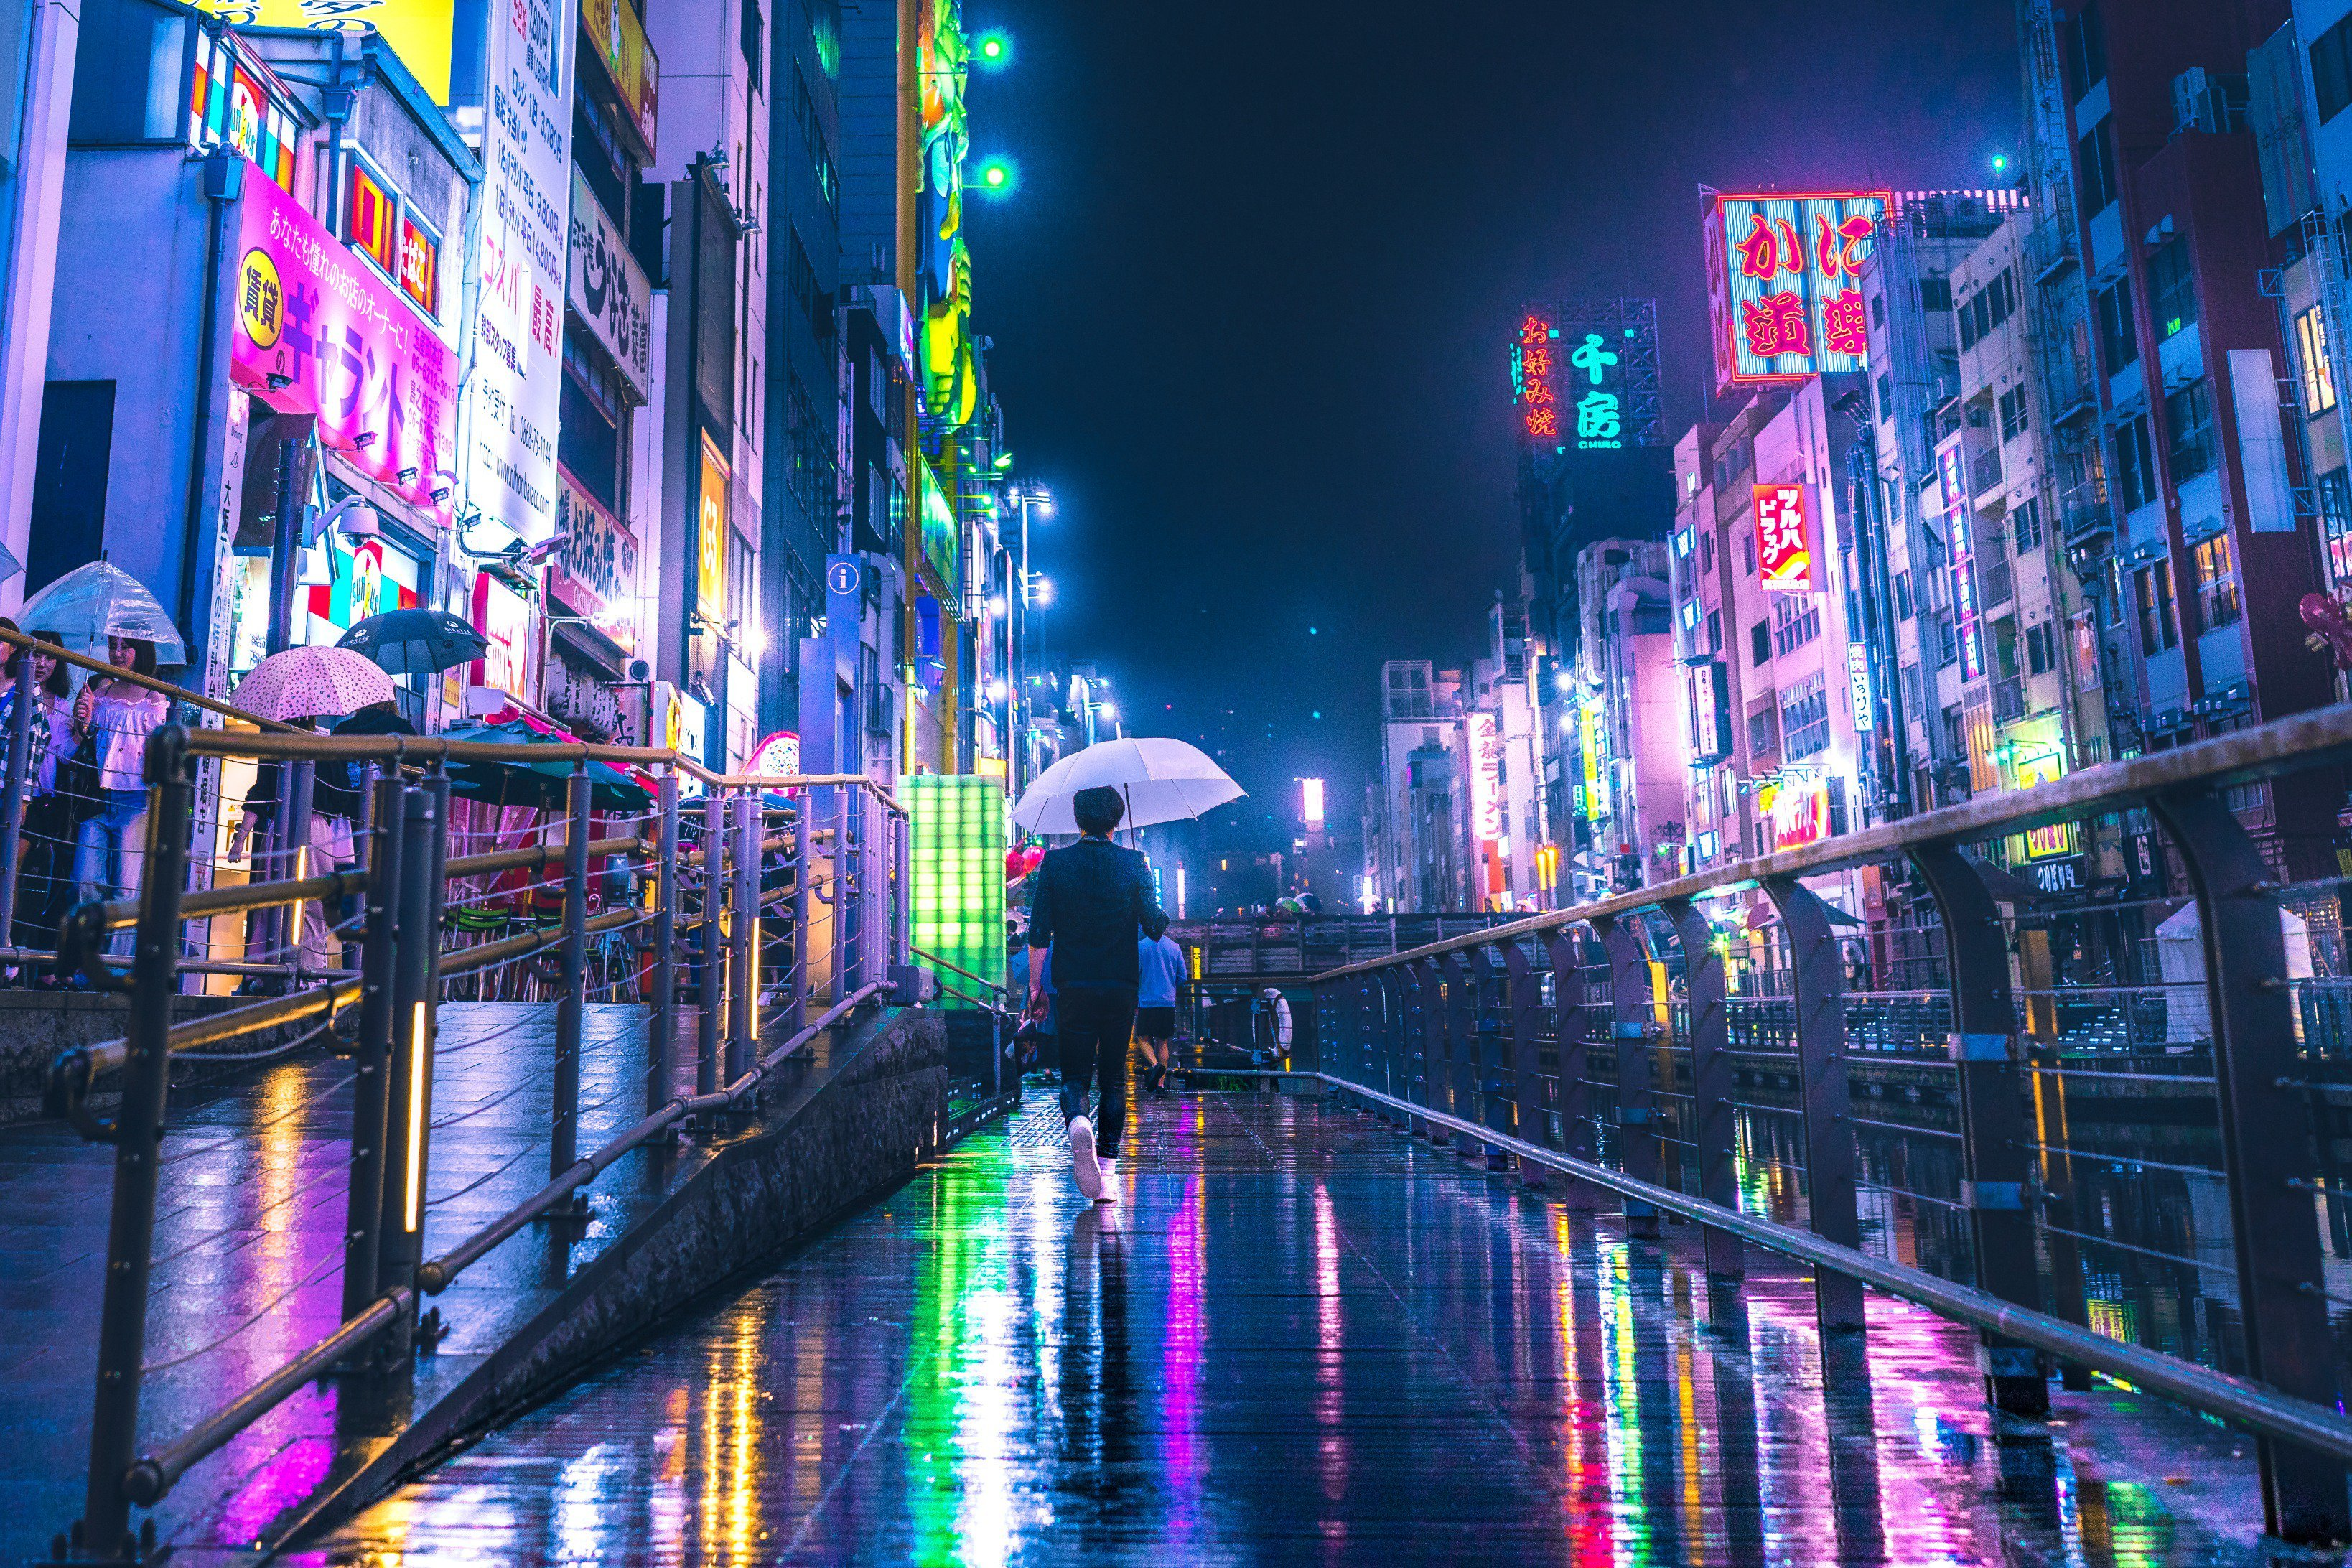 Nov 04, 2020· tons of awesome japanese 4k aesthetic wallpapers to download for free. Japanese City Aesthetic Wallpaper 4K : Japan, Night, Town ...